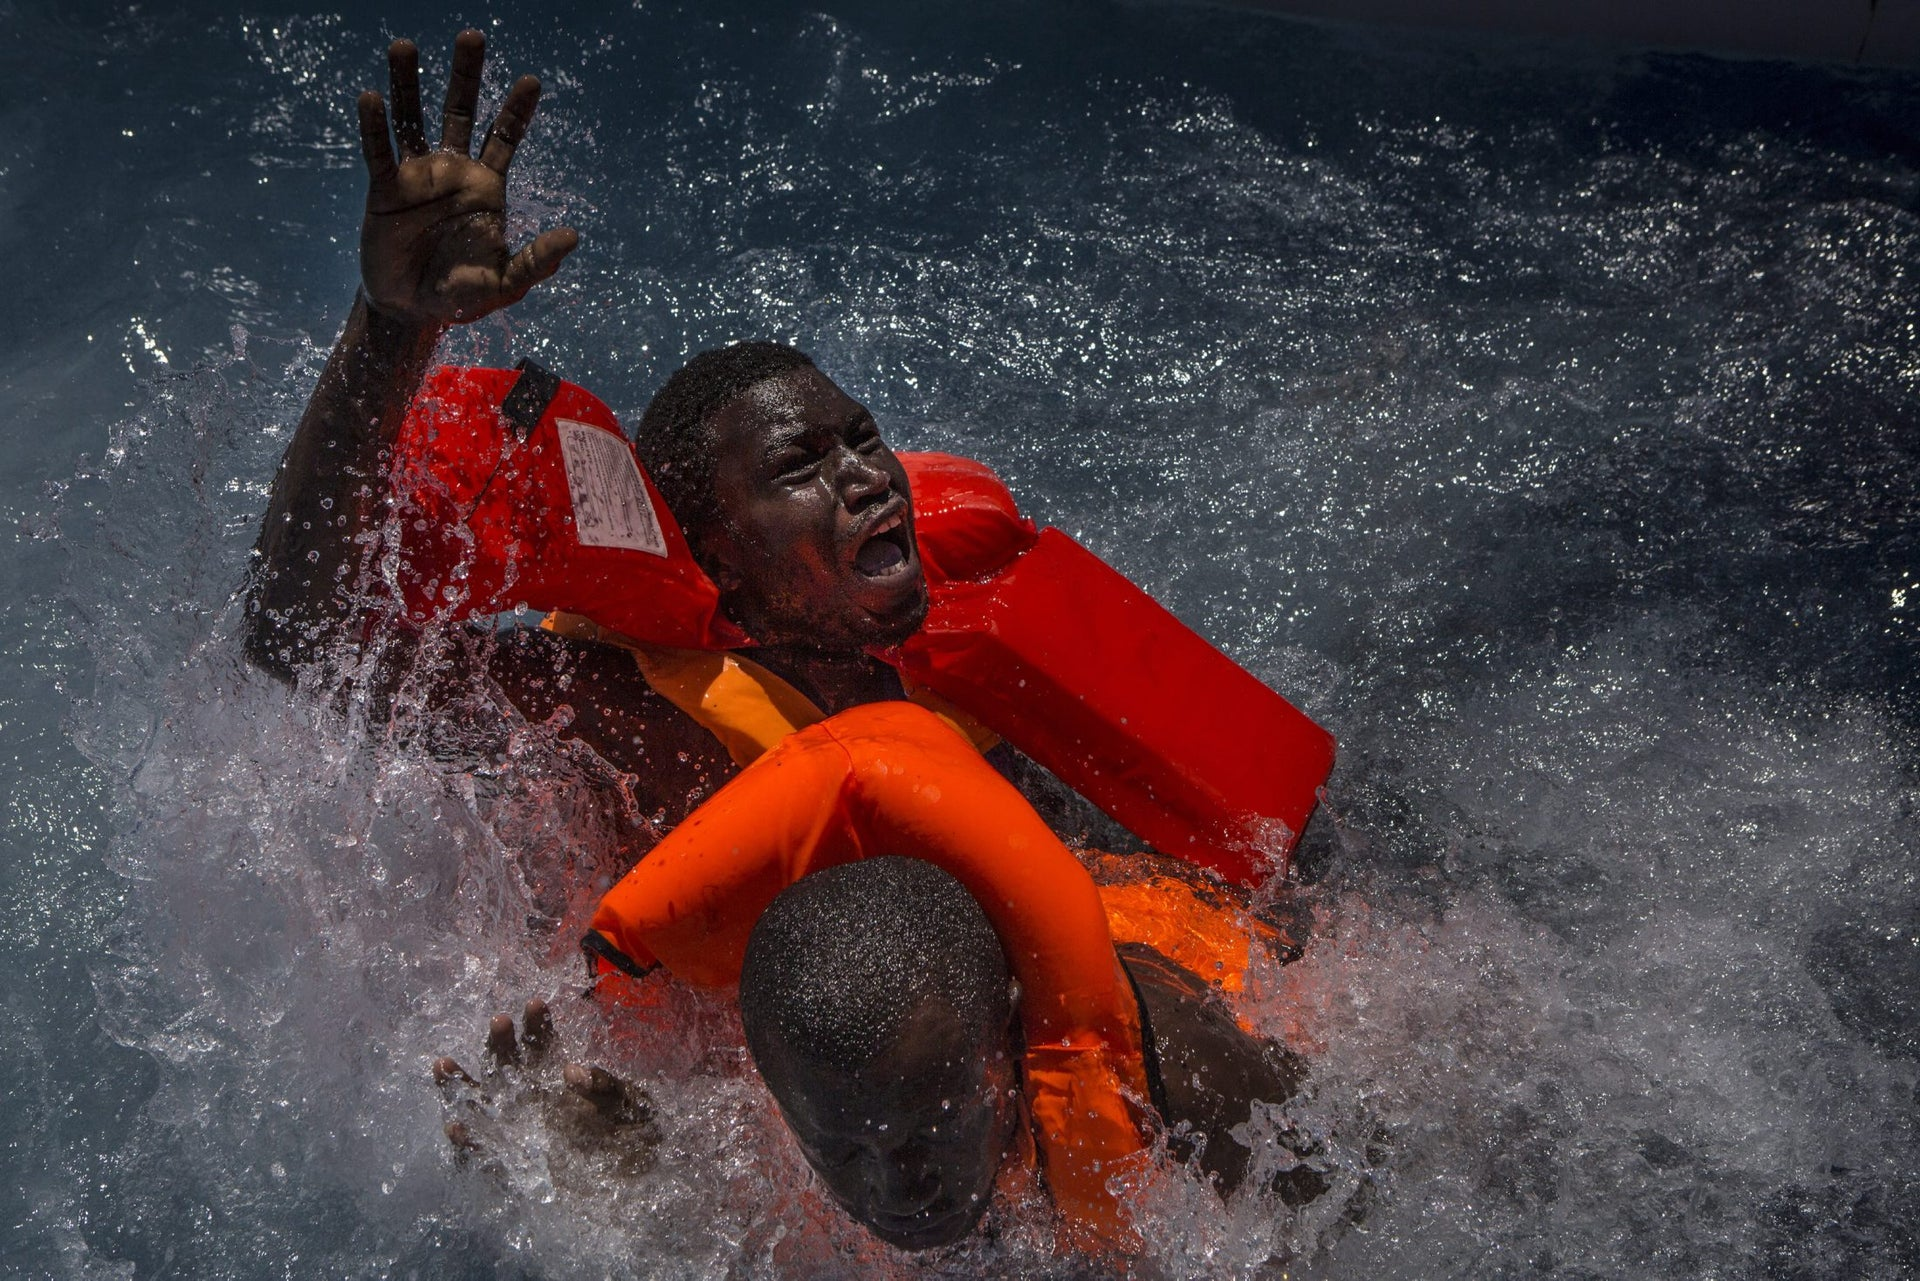 Spot News, third prize stories - Two men panic and struggle in the water during their rescue. Their rubber boat was in distress and deflating quickly on one side, tipping many migrants in the water. They were quickly reached by rescue swimmers and brought to safety.